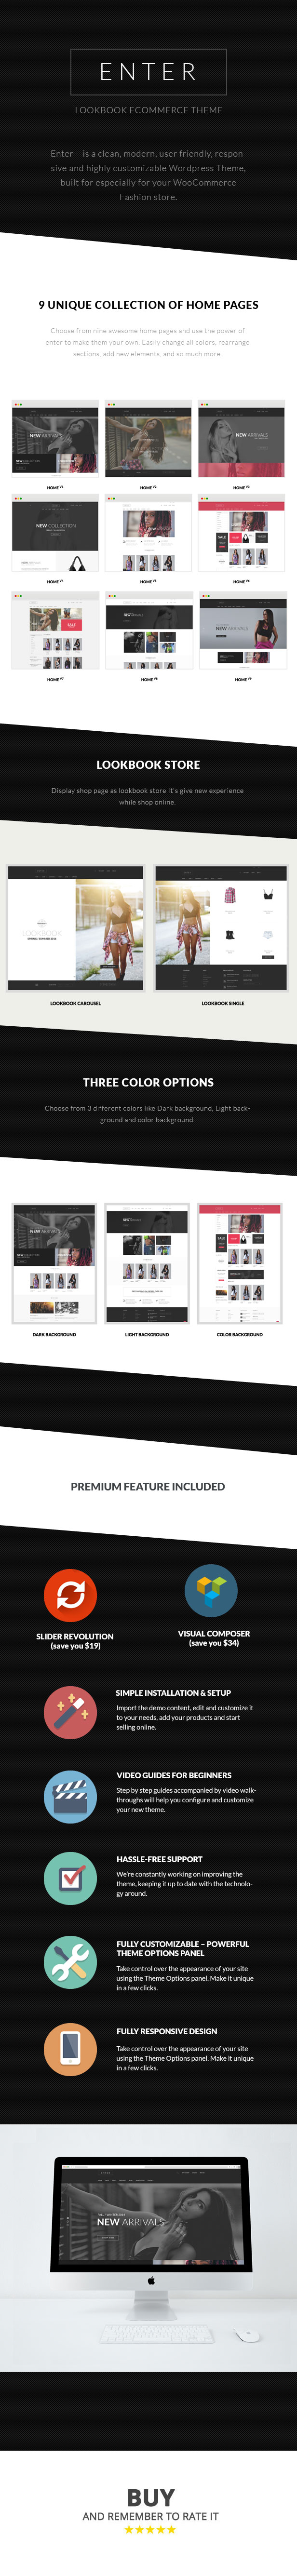 Enter - Fashion & Look Book WooCommerce Theme - 1